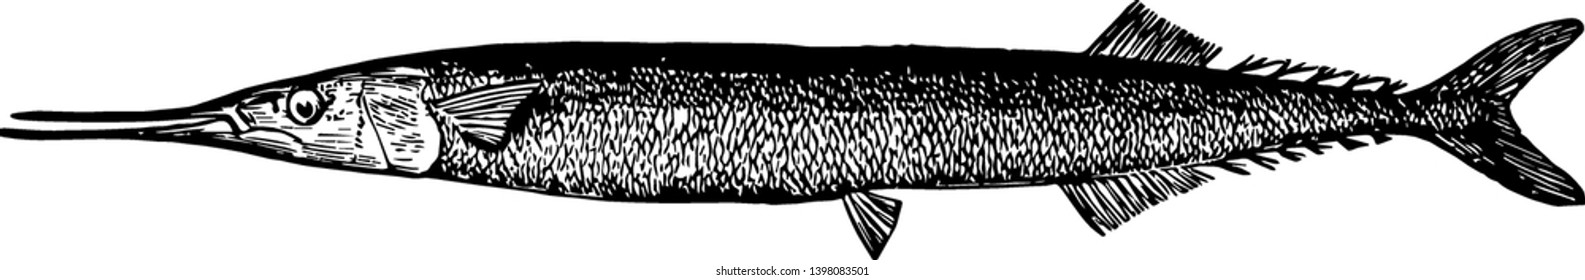 Saury is a tropical fish known for jumping and skimming the water vintage line drawing or engraving illustration.